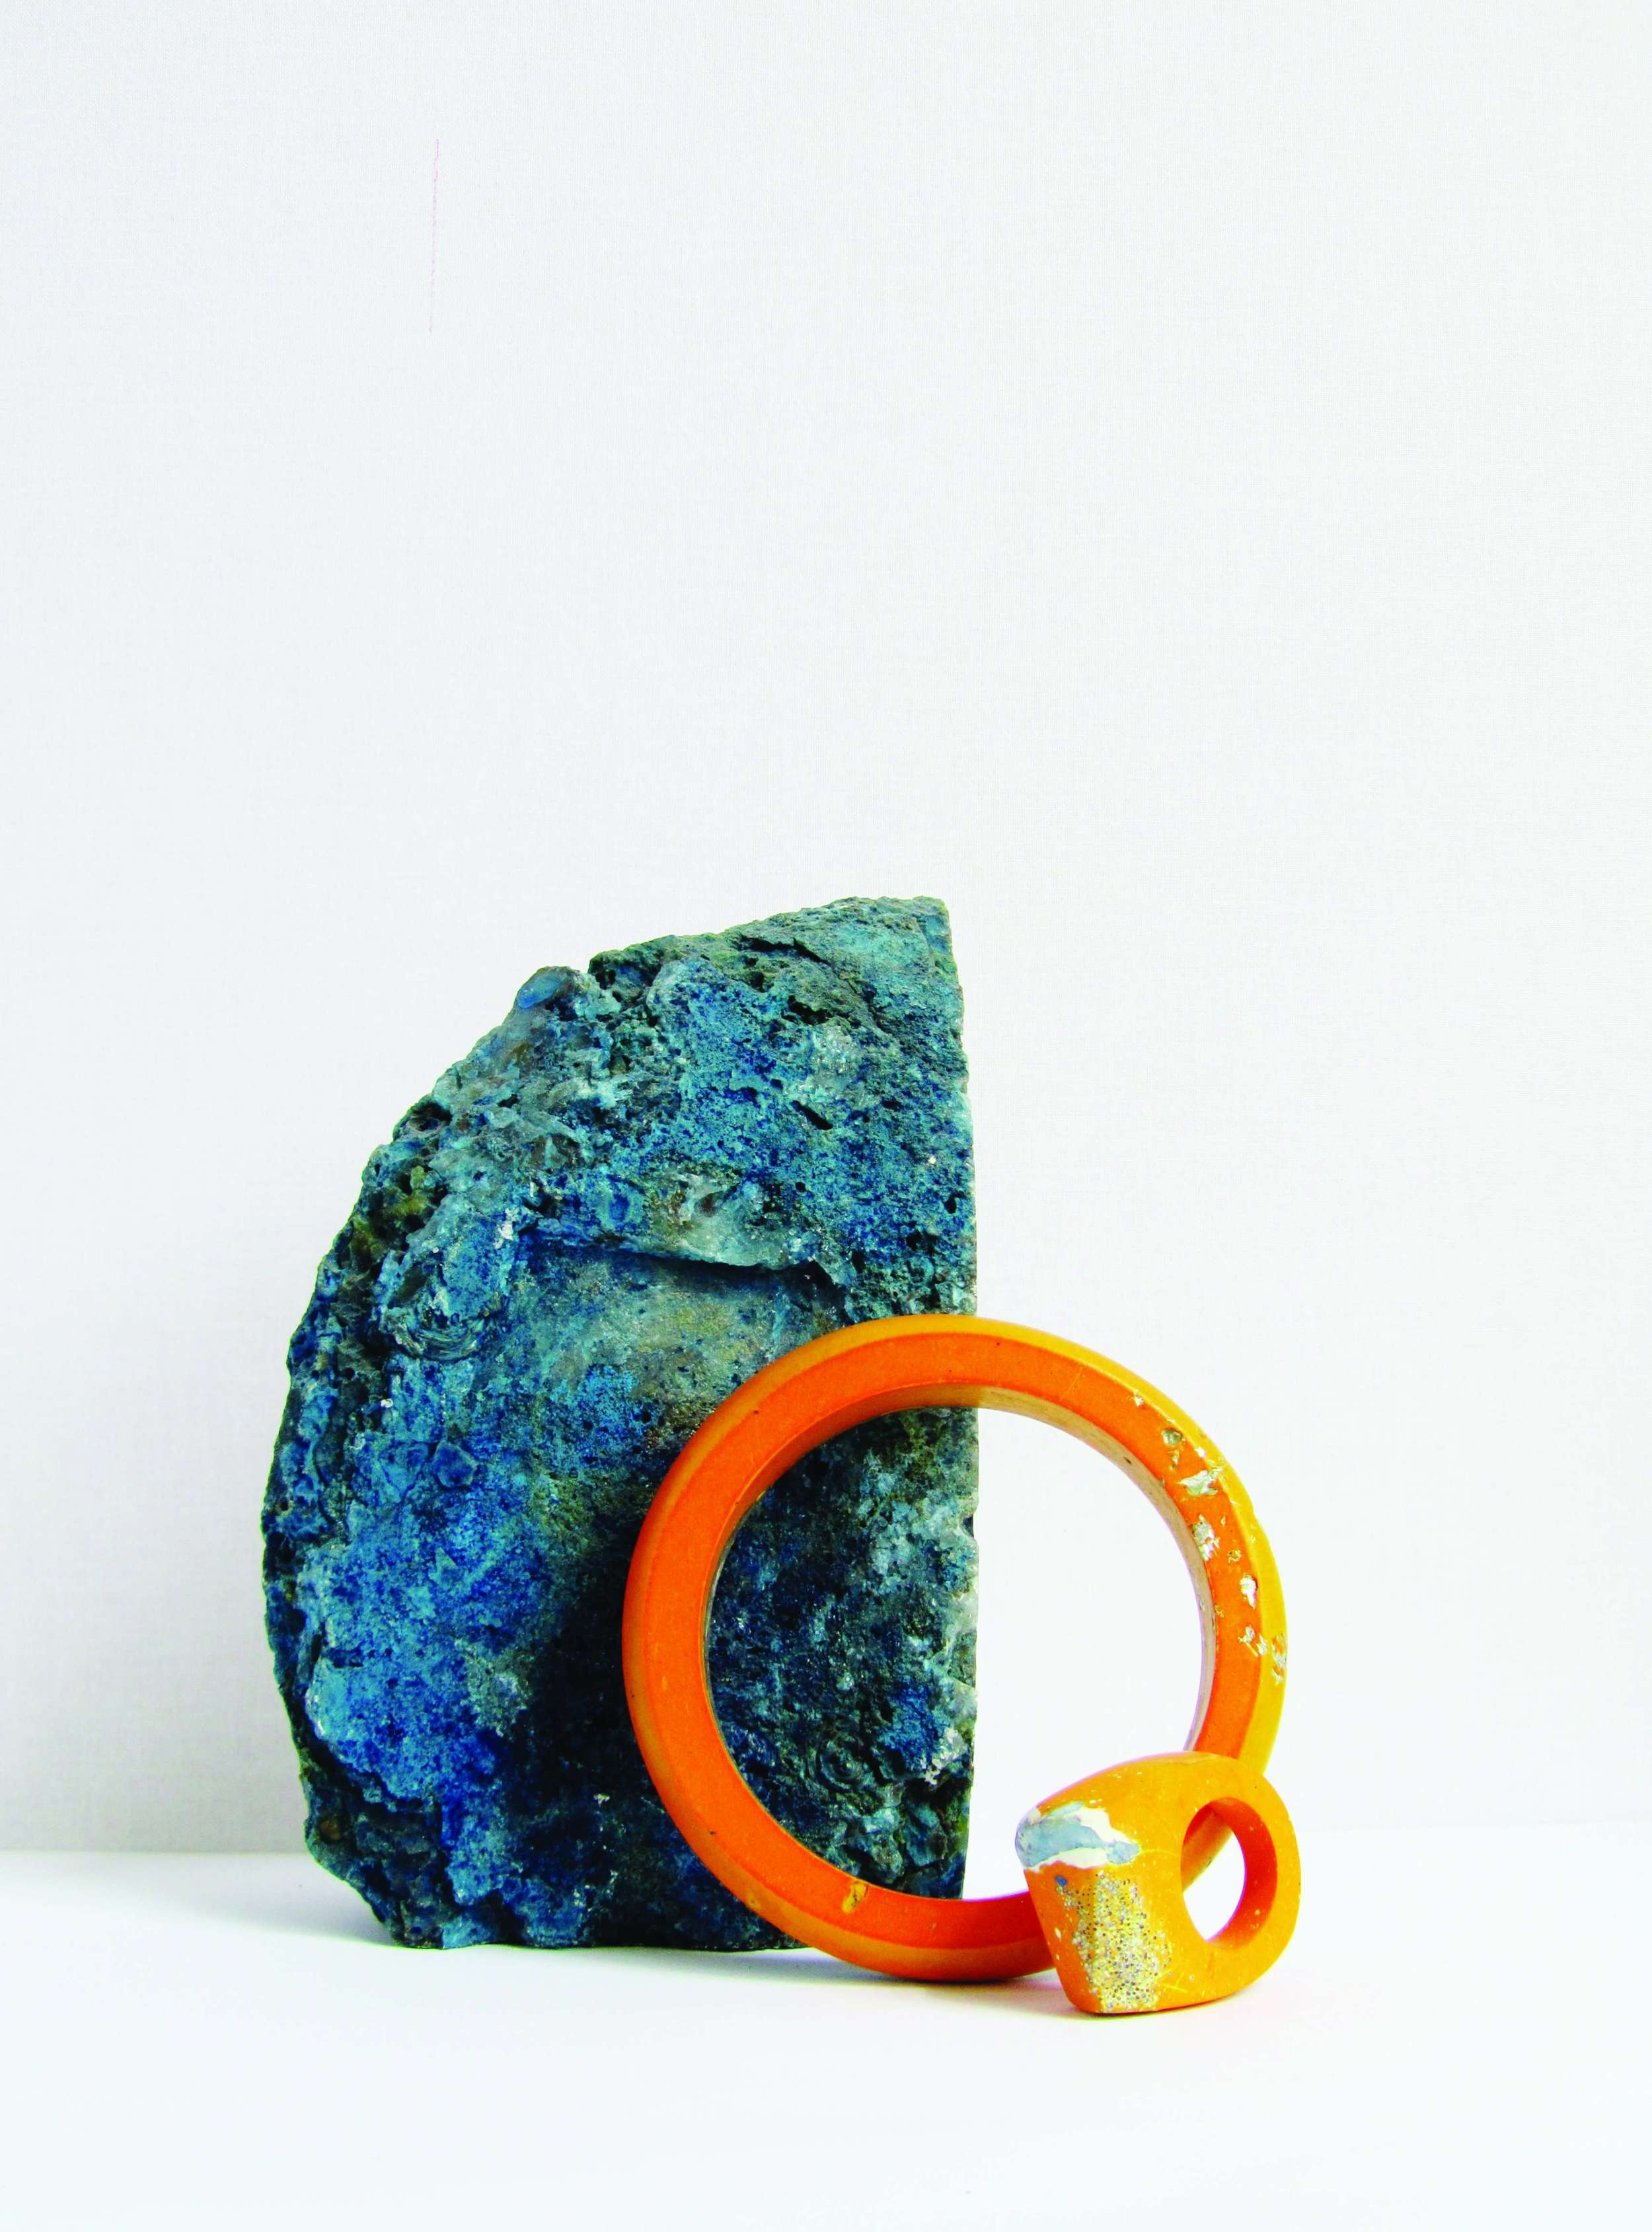 1439368688_tmp_jade_mellor_orange_hewn_bangle_ring_resin_contemporary_jewellery_raw_mineral_blue_contrast_rock_geological.jpg